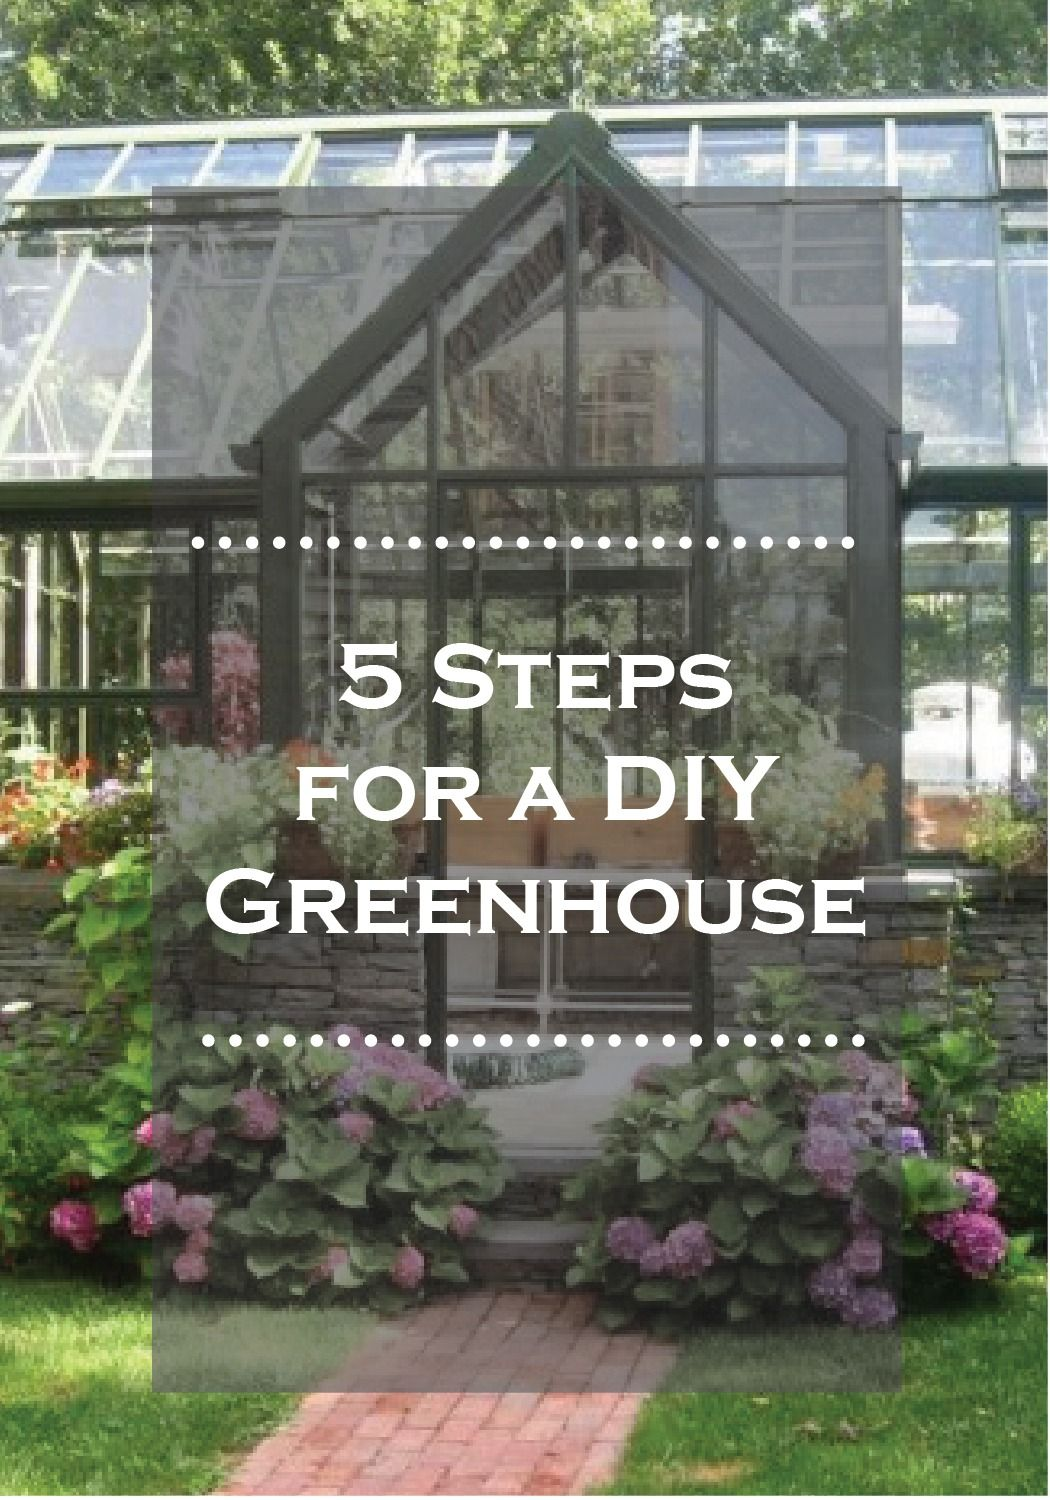 Have the greenhouse of your dreams for your plants with this 5-step guide!